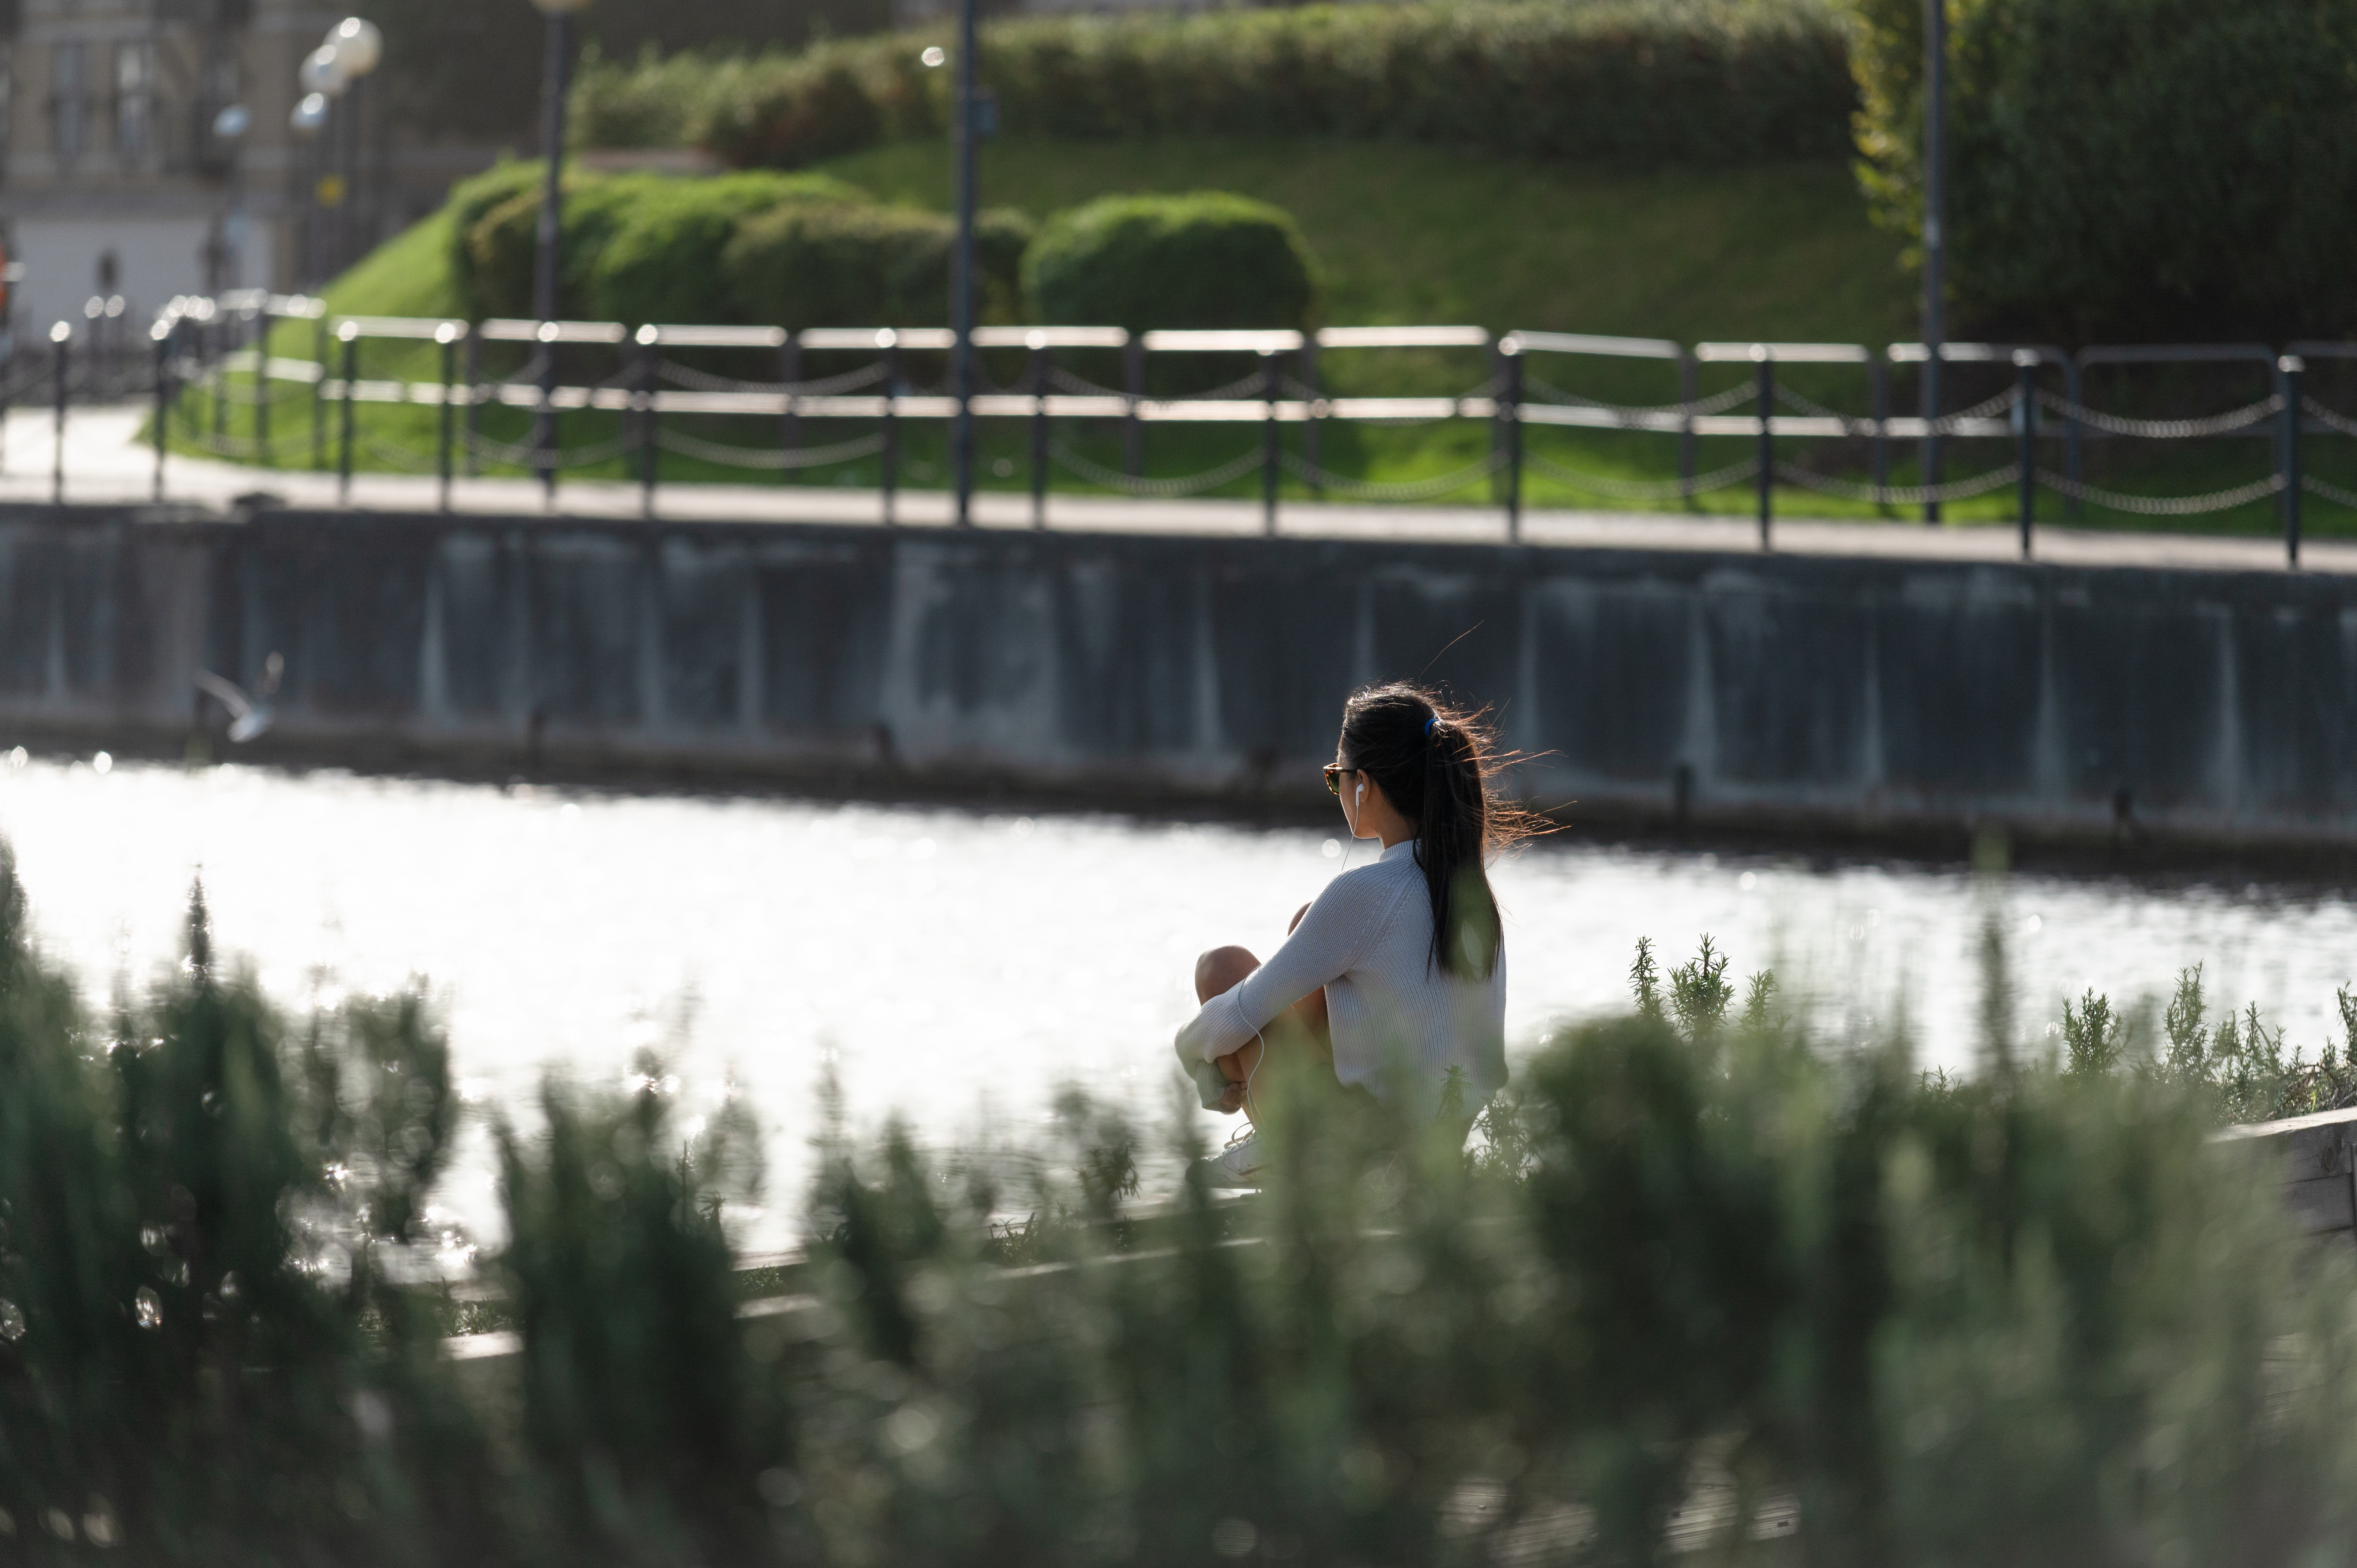 A woman sitting and looking out on the dock water